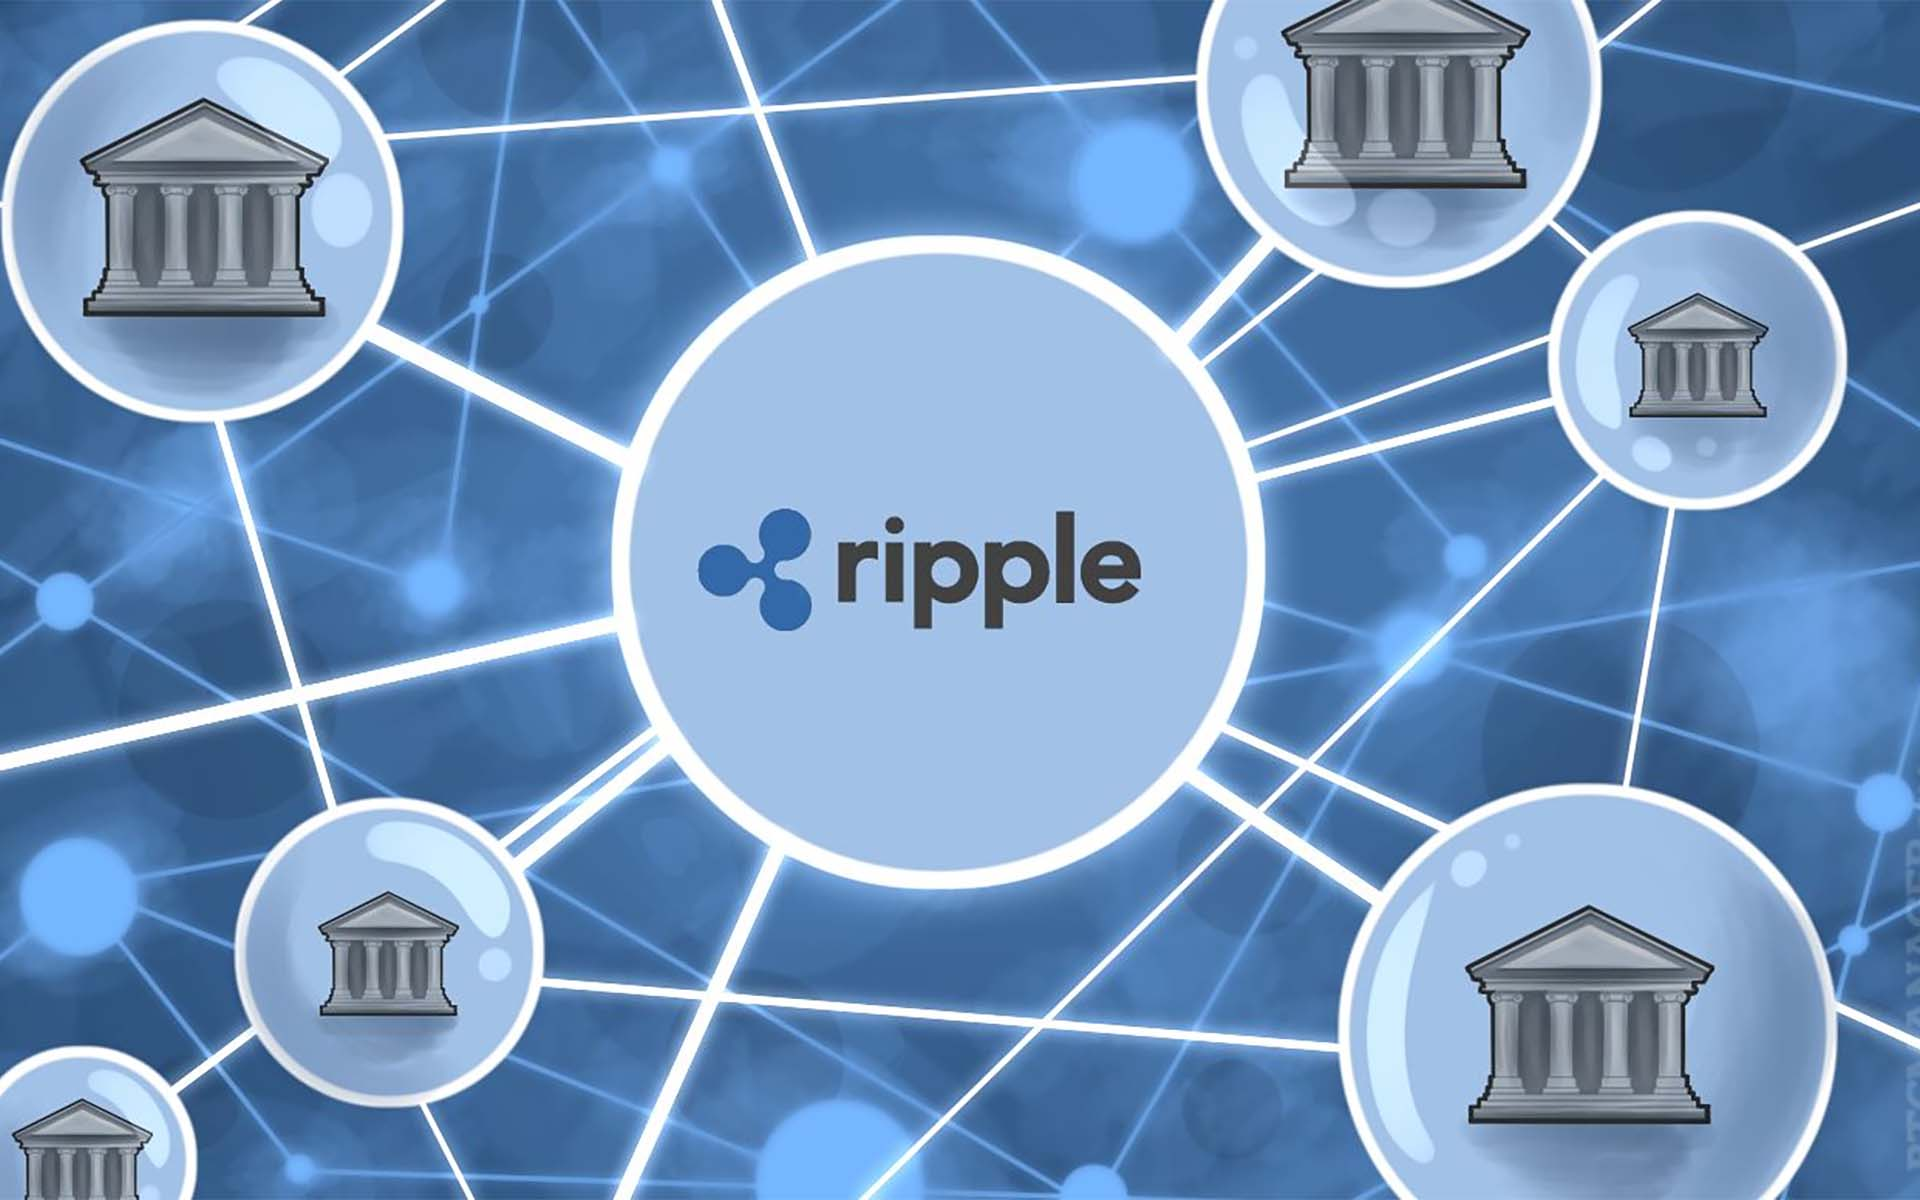 Ripple Shoots Up After AMEX Deal and Secret US Bank Meeting